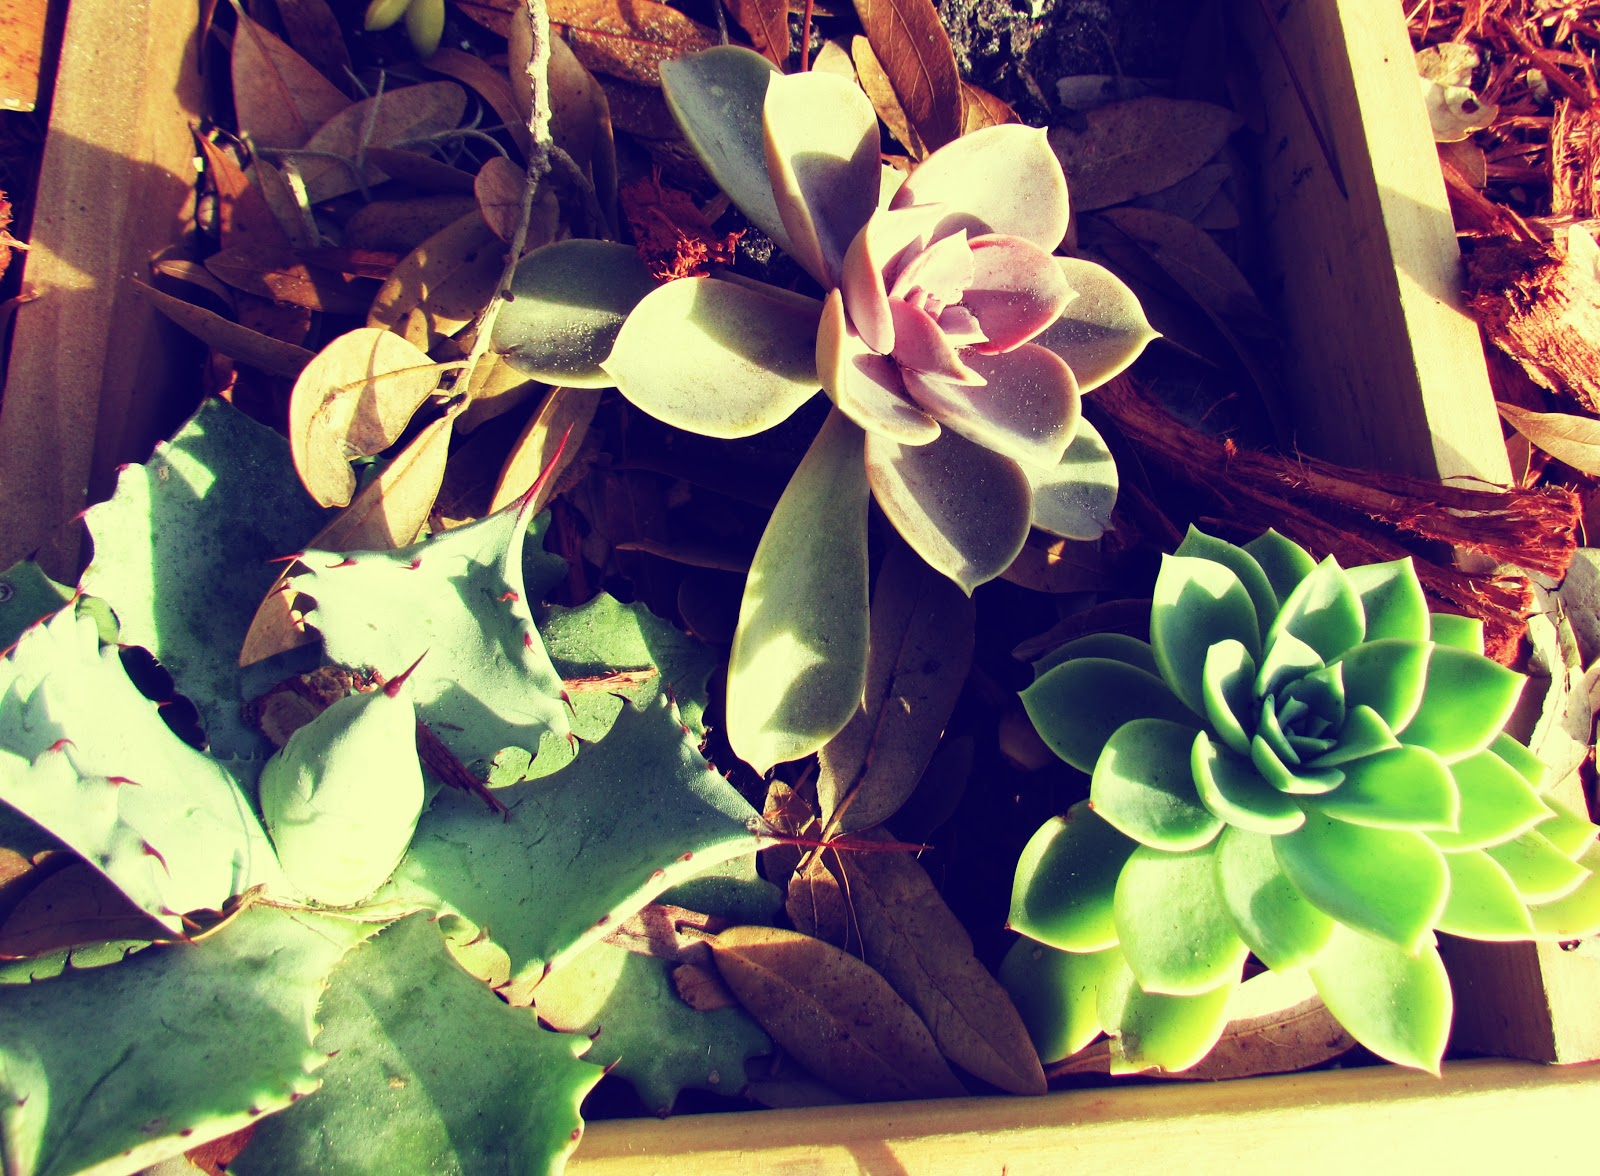 Succulent Plant Life in a Container Garden Urban Gardening Setting